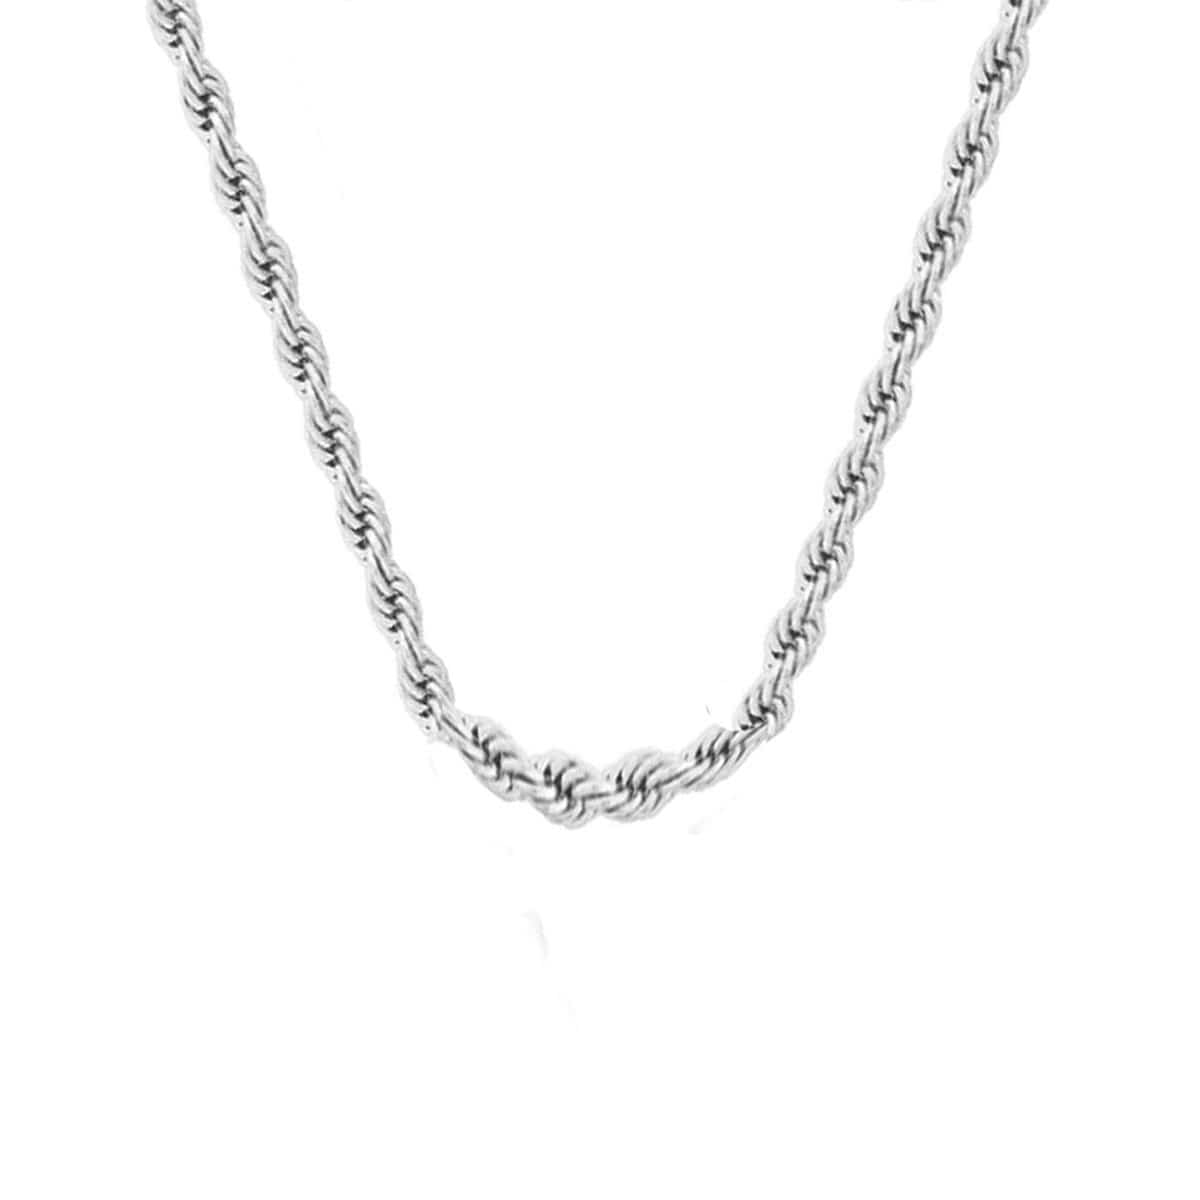 Silver Stainless Steel 5mm French Rope Chain